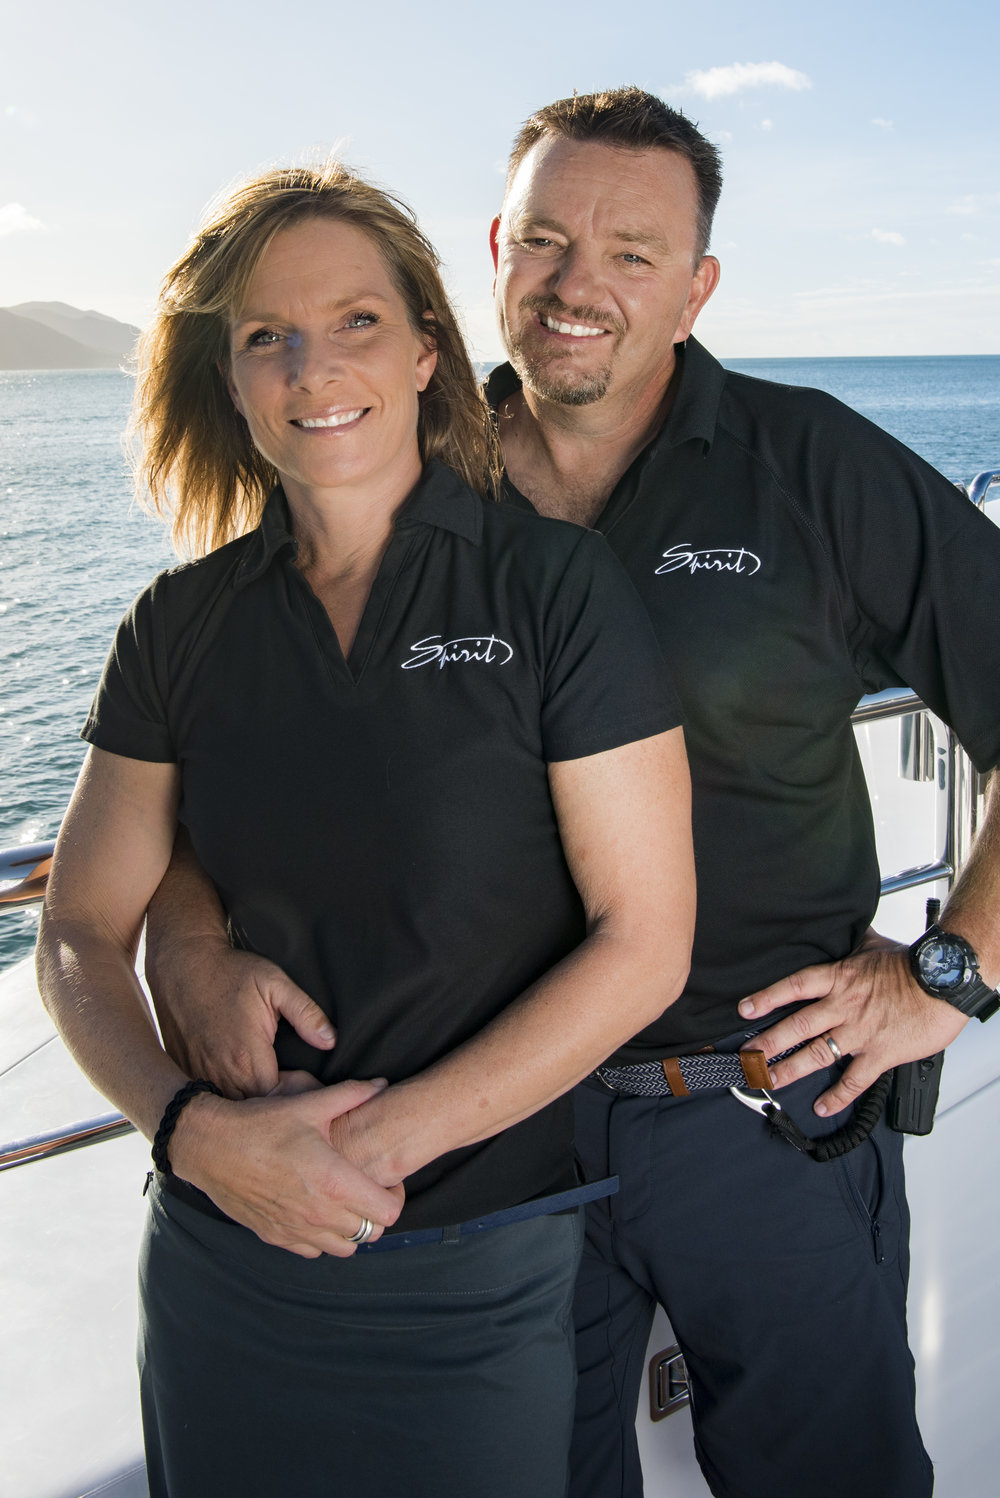 Captain Martin & Chef Jo Incredible adventures in remote destinations. With their vast experience and their hand-picked crew, you know you are in safe hands.   -